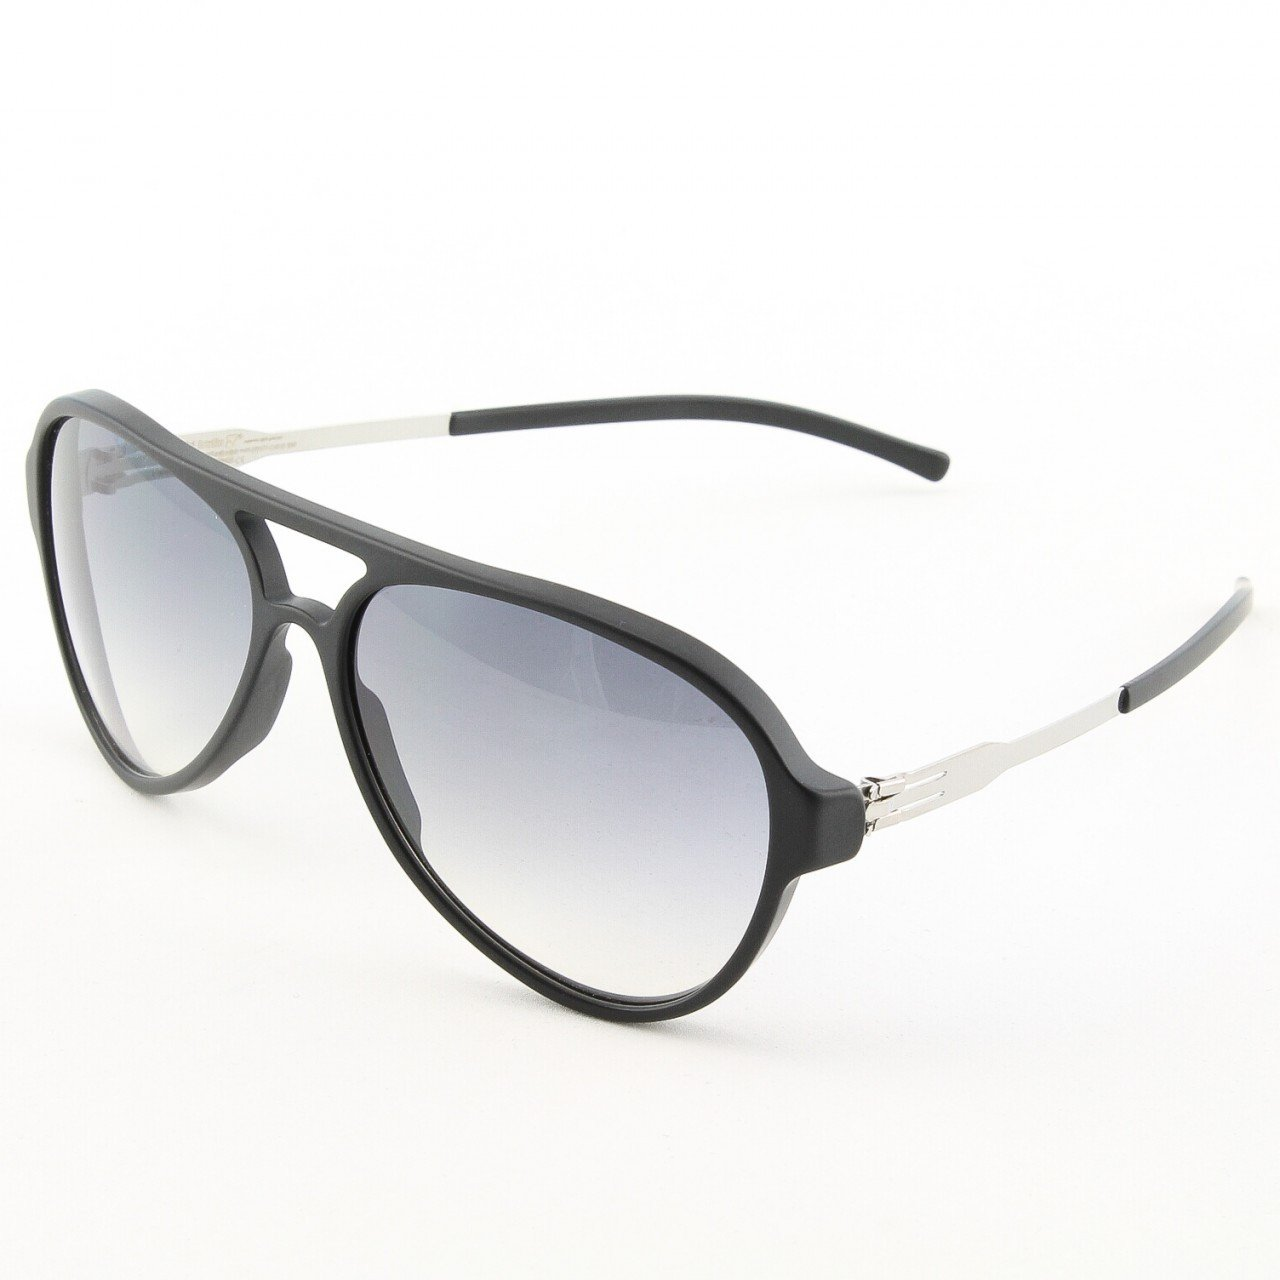 ic! Berlin Gefrone Sunglasses Col. Black/Chrome with Black Gradient Lenses